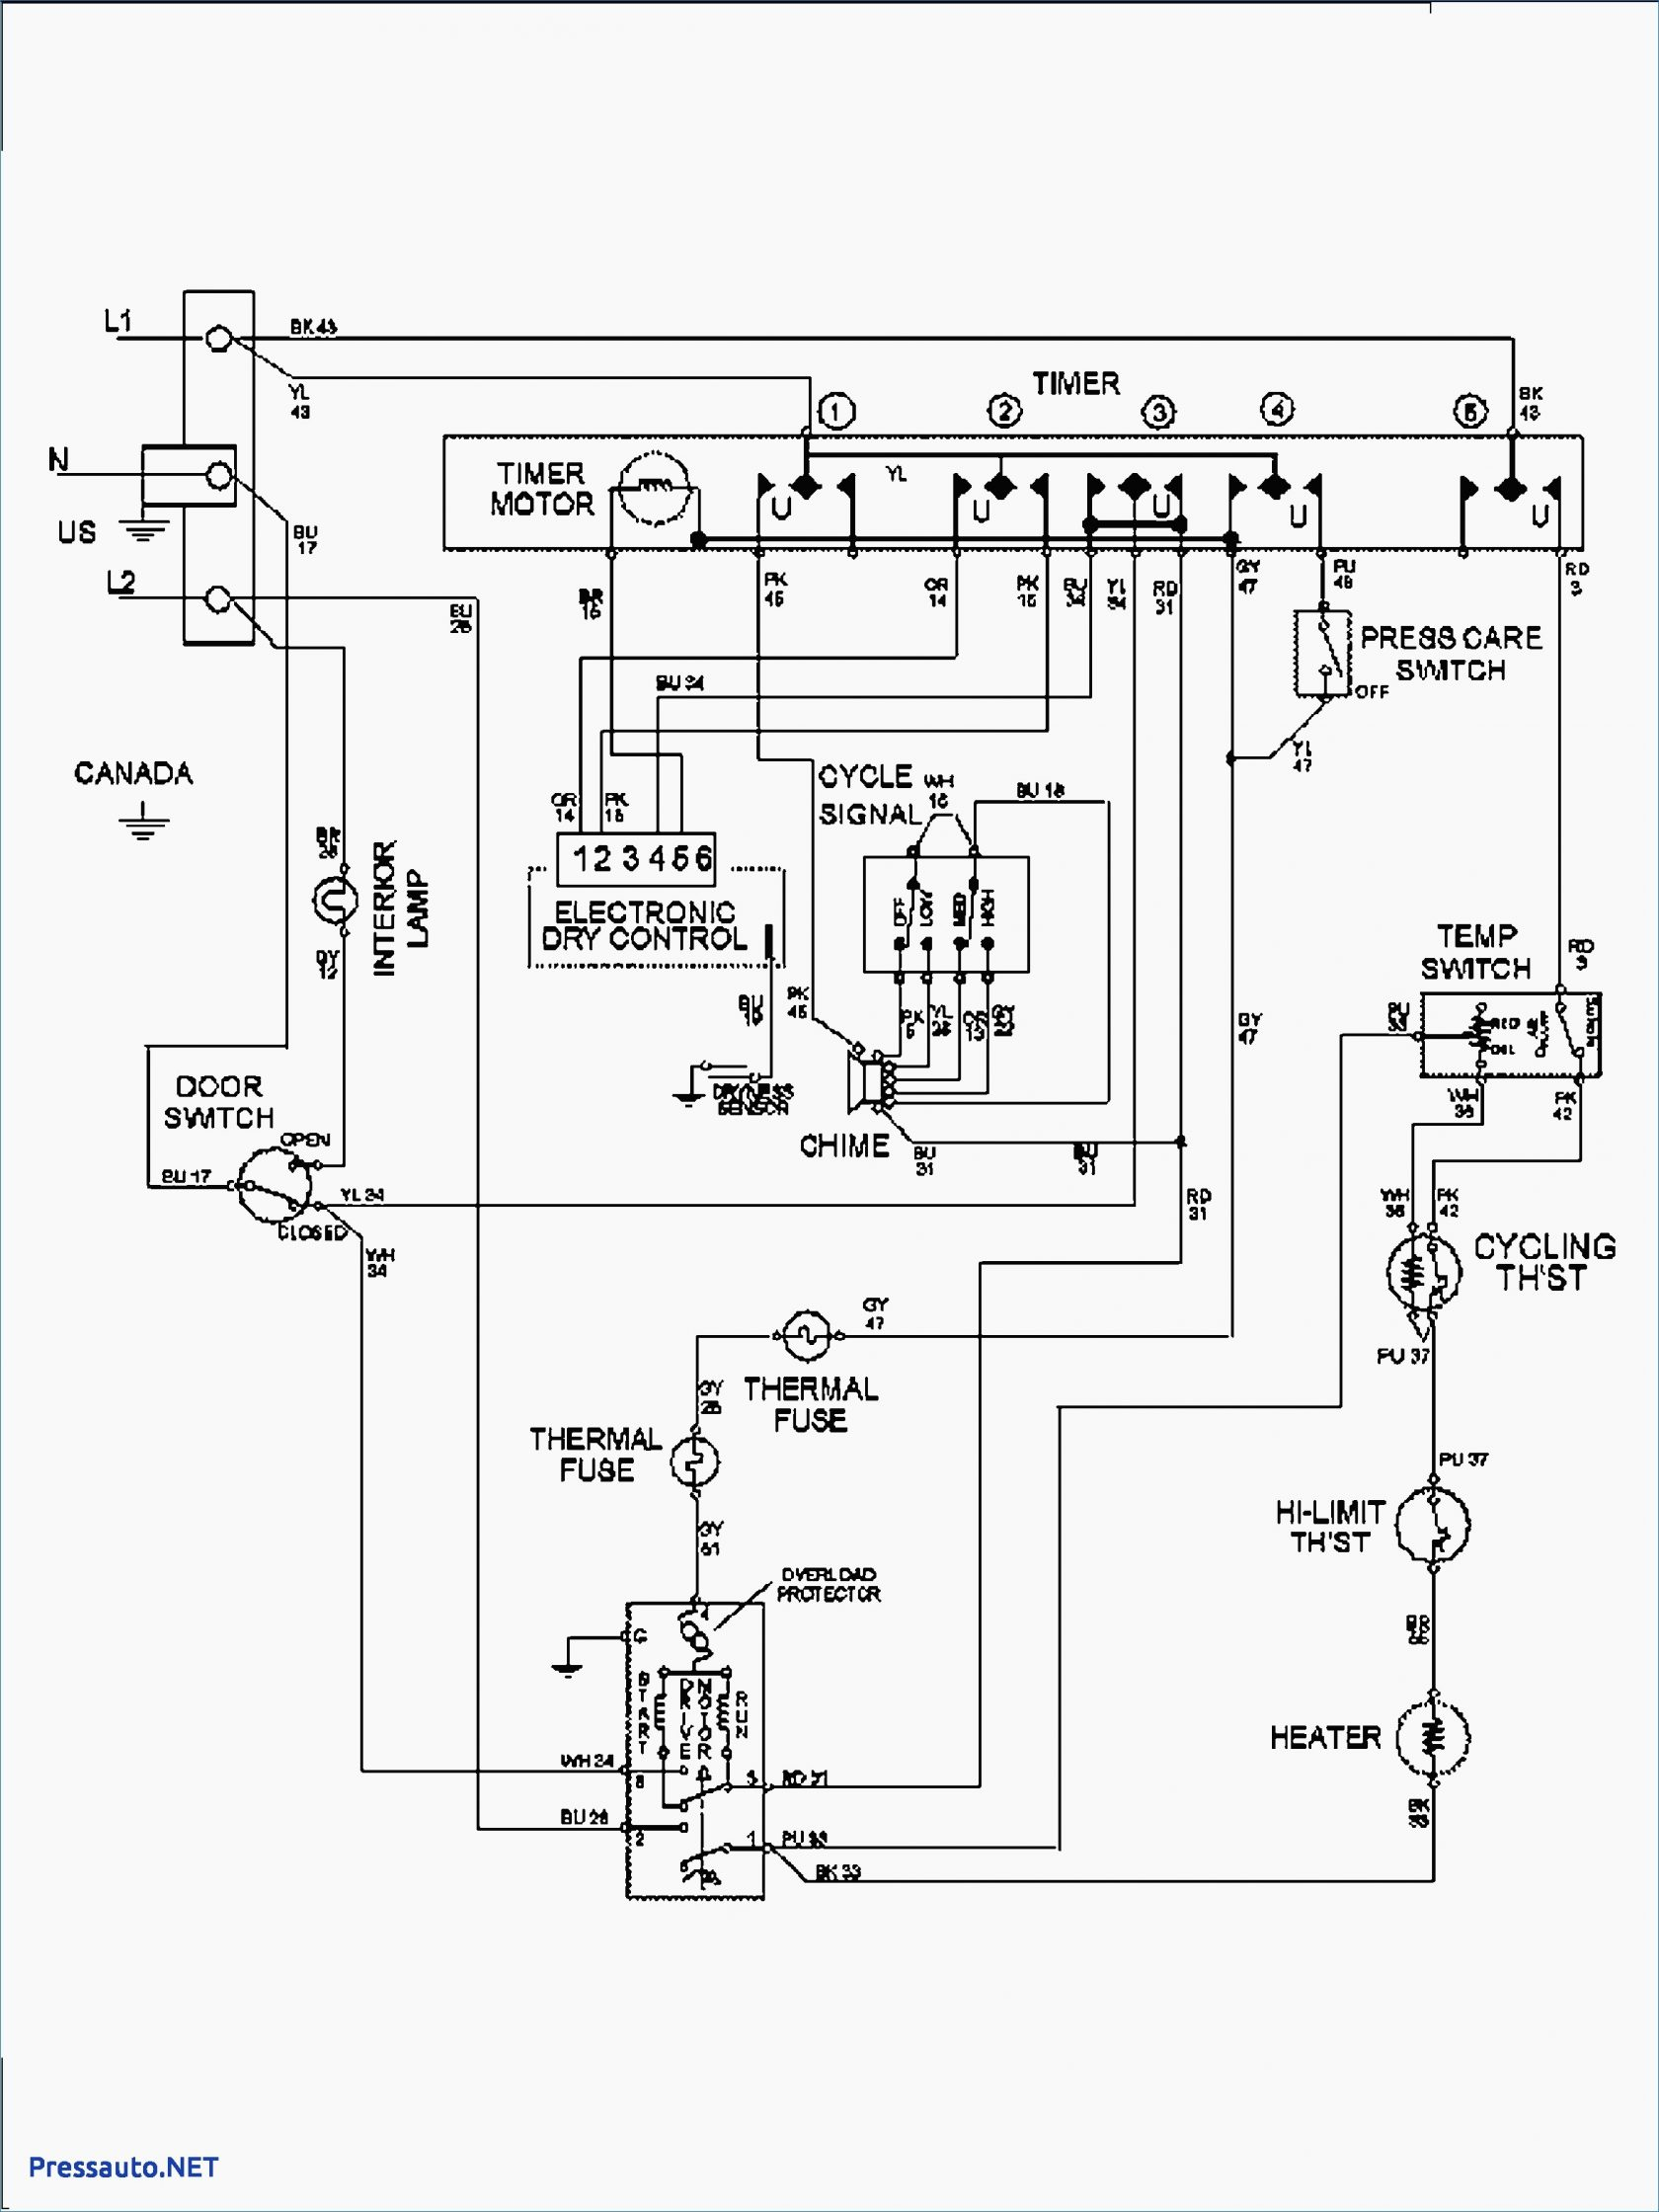 Pump Thermostat Wiring Diagram Moreover Nest Thermostat Wiring Diagram